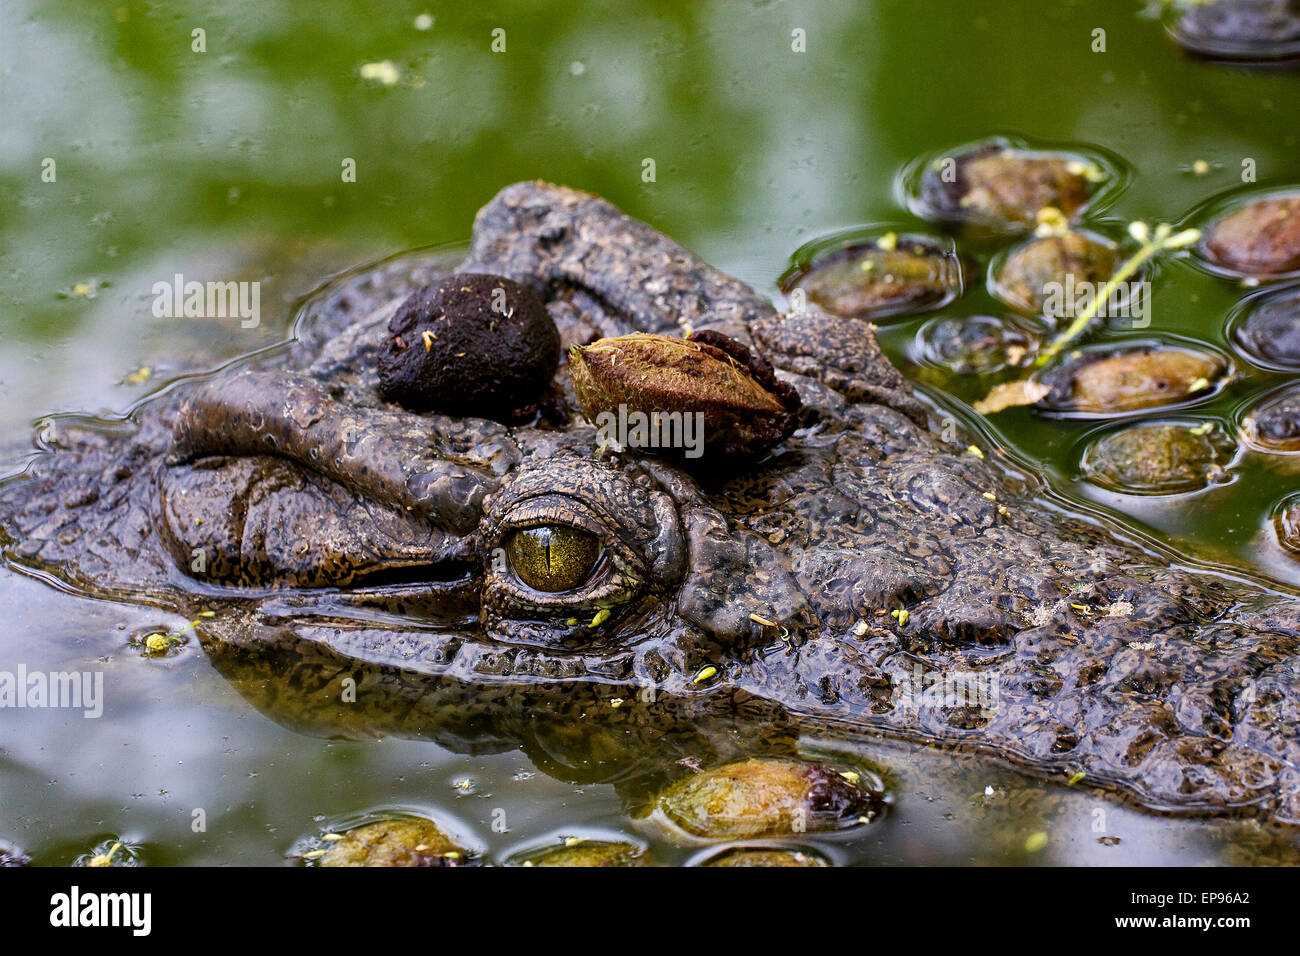 a close up of the face of a crocodile in the water in madagascar,nosy be Stock Photo